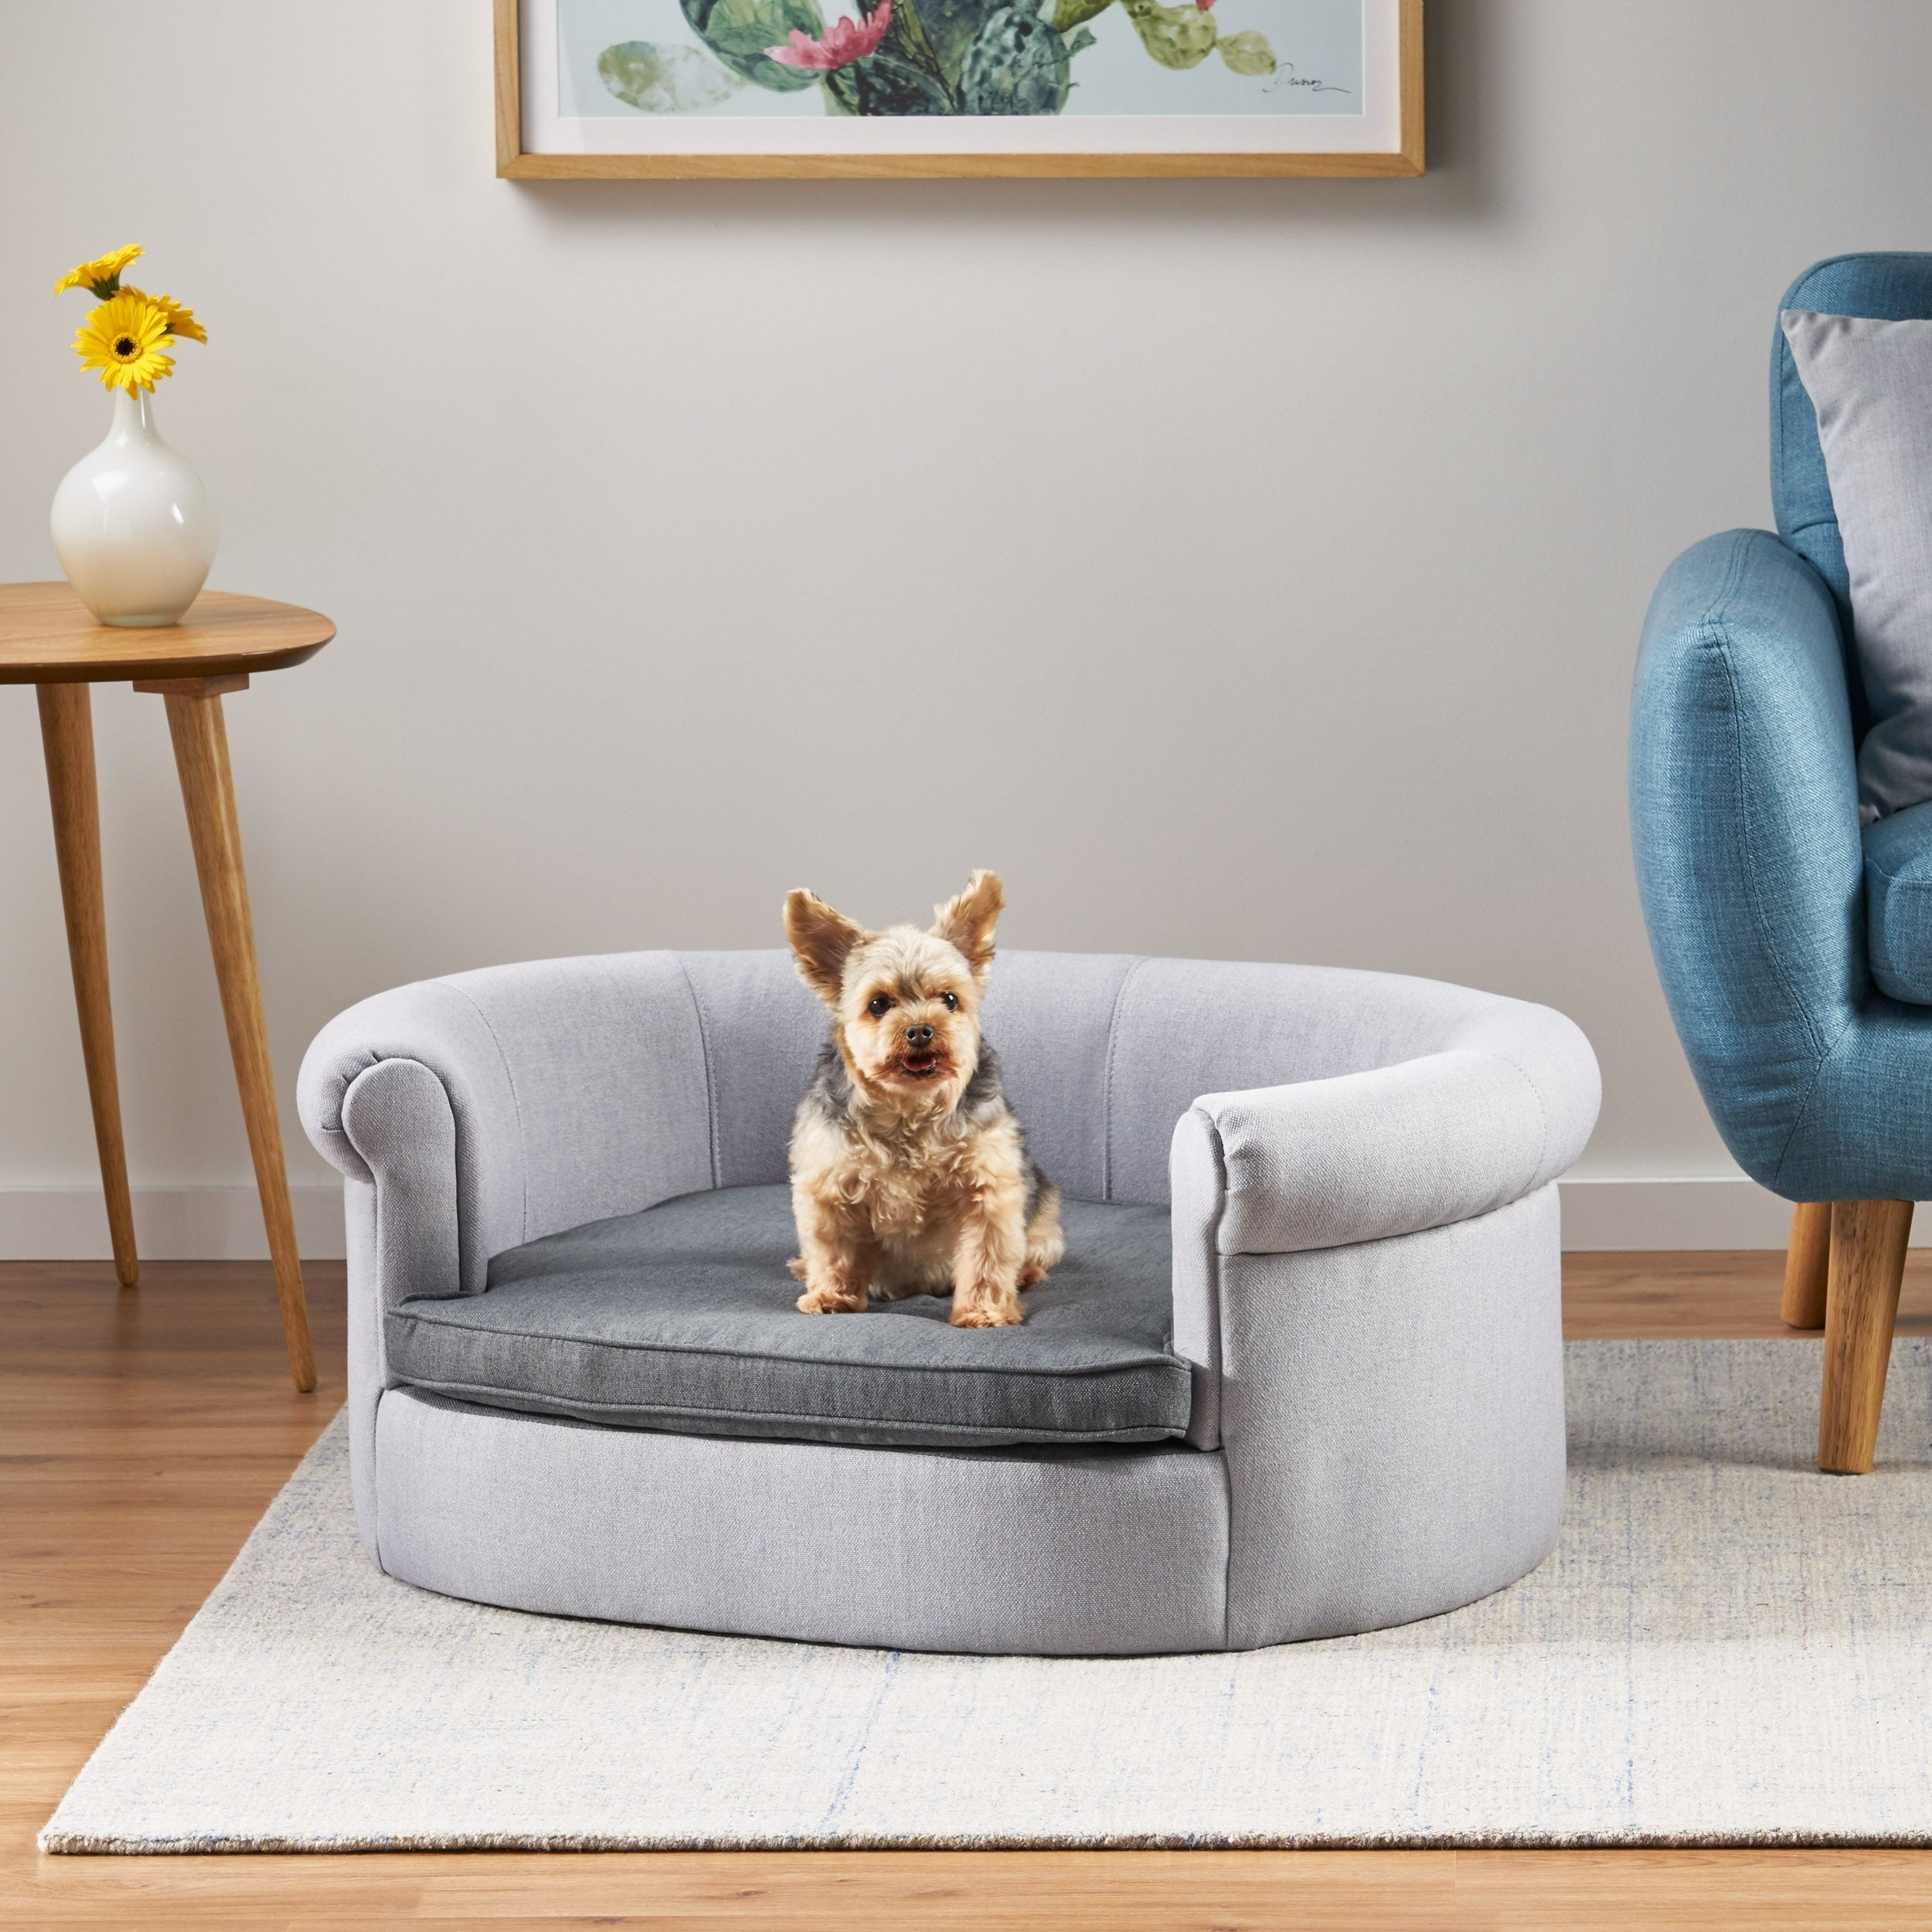 Incredible Buy Modern Contemporary Dog Sofas Chair Beds Online At Interior Design Ideas Tzicisoteloinfo